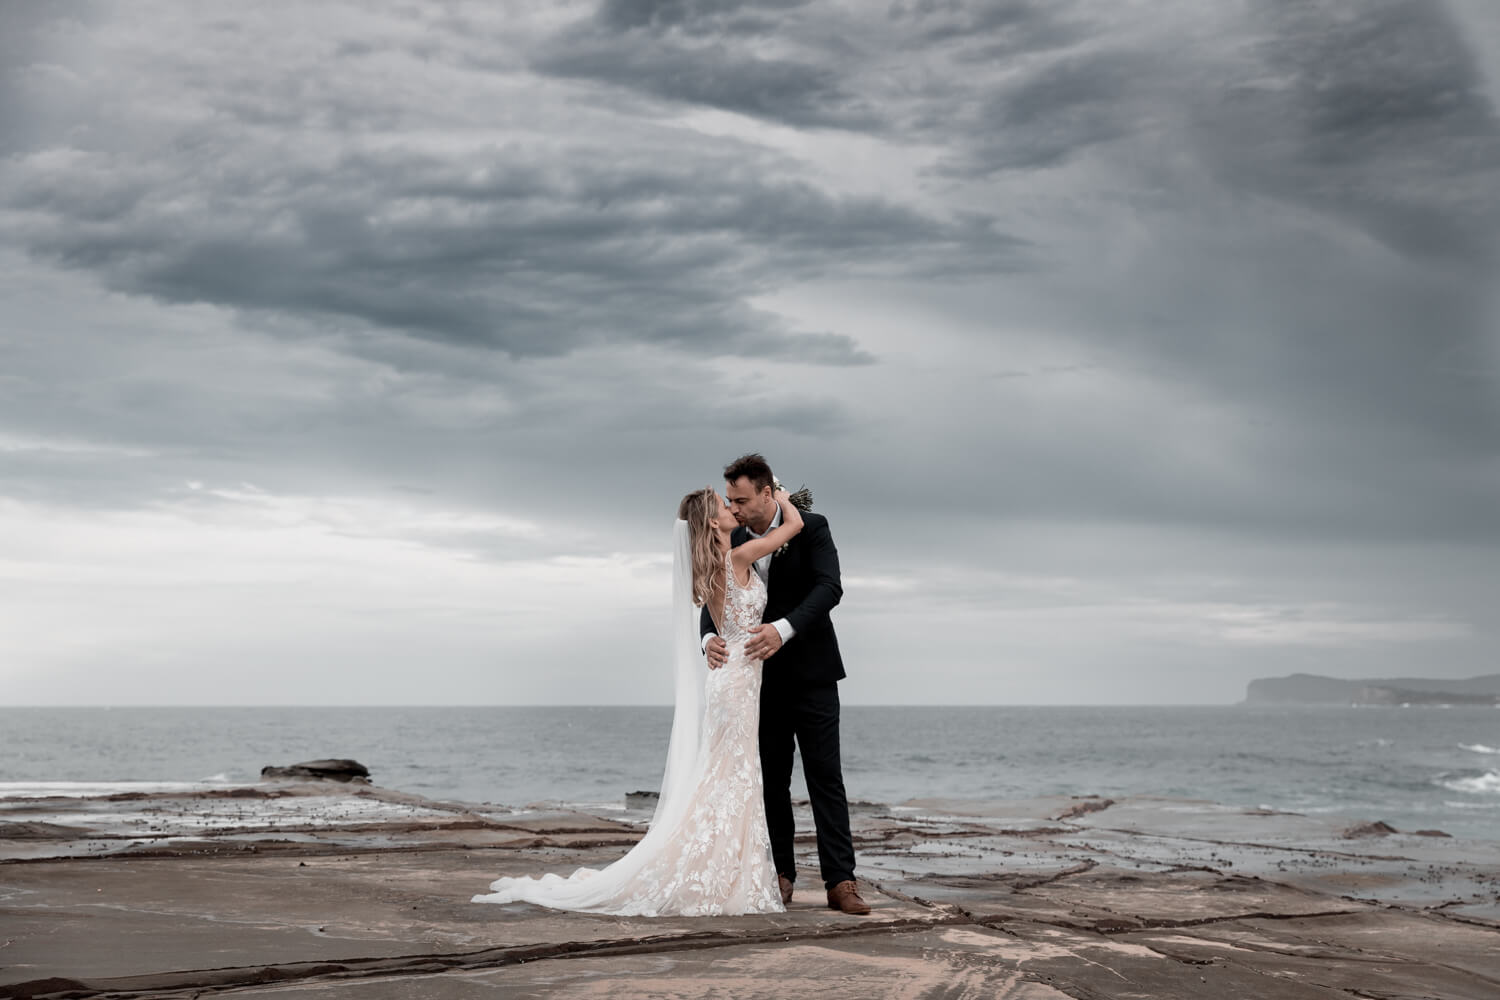 traditional weddings vs elopements - Justin and Bec kissing